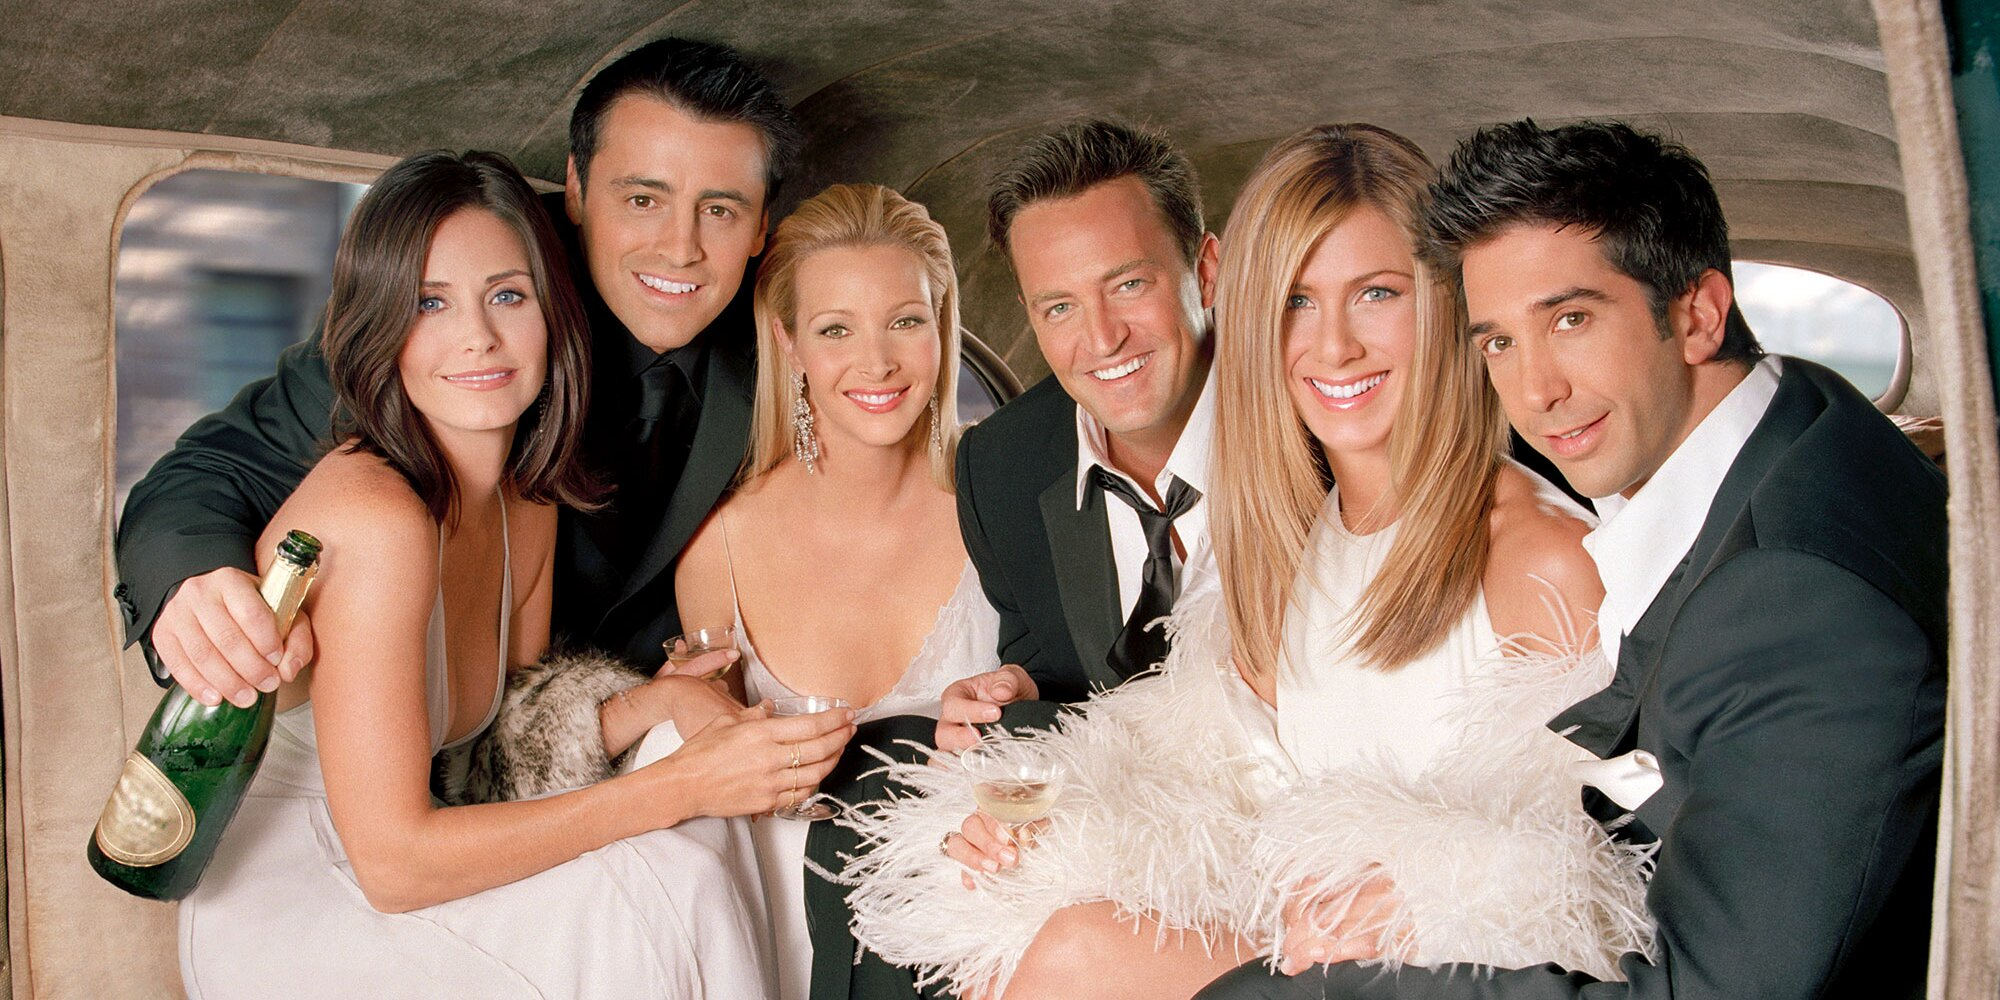 Matthew Perry explains why 'Friends' continues to gain fans 25 years later